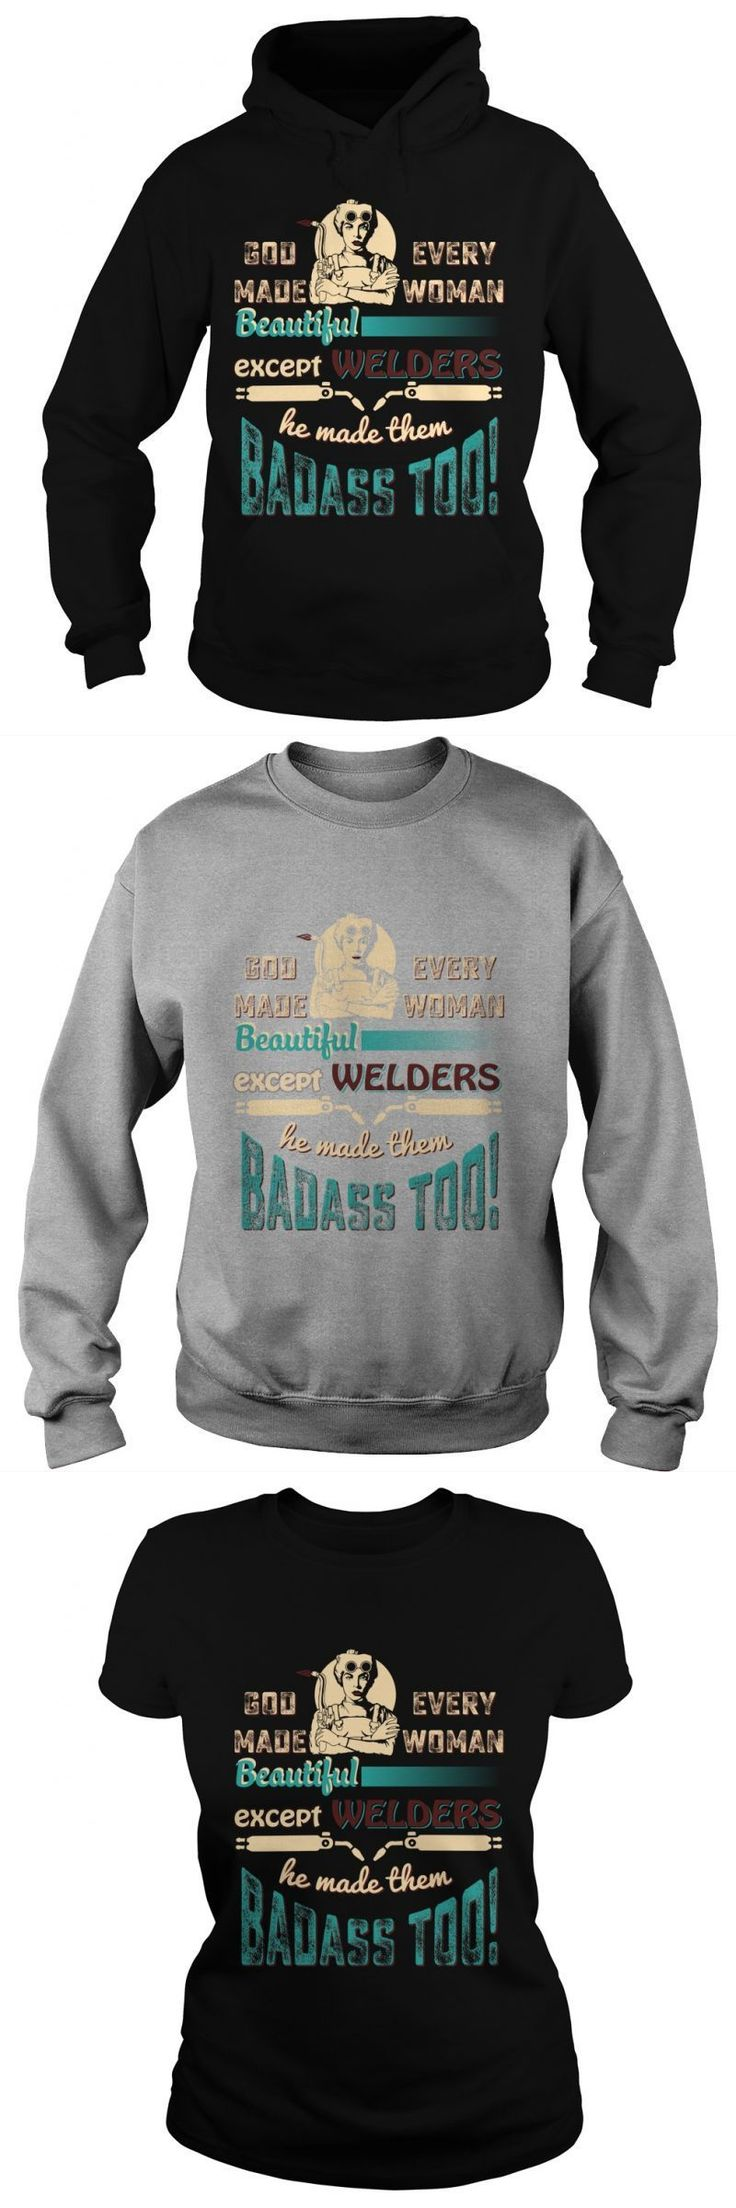 God Made Every Woman Beautiful Except Welders He Made Them Badass Too     Hoodie Sweat Shirt Ladies Tee Ladies V-Neck T-shirt Business In A Box Business Logo T-shirt Printing T Shirt Business On Shark Tank T Shirt Design Business Names